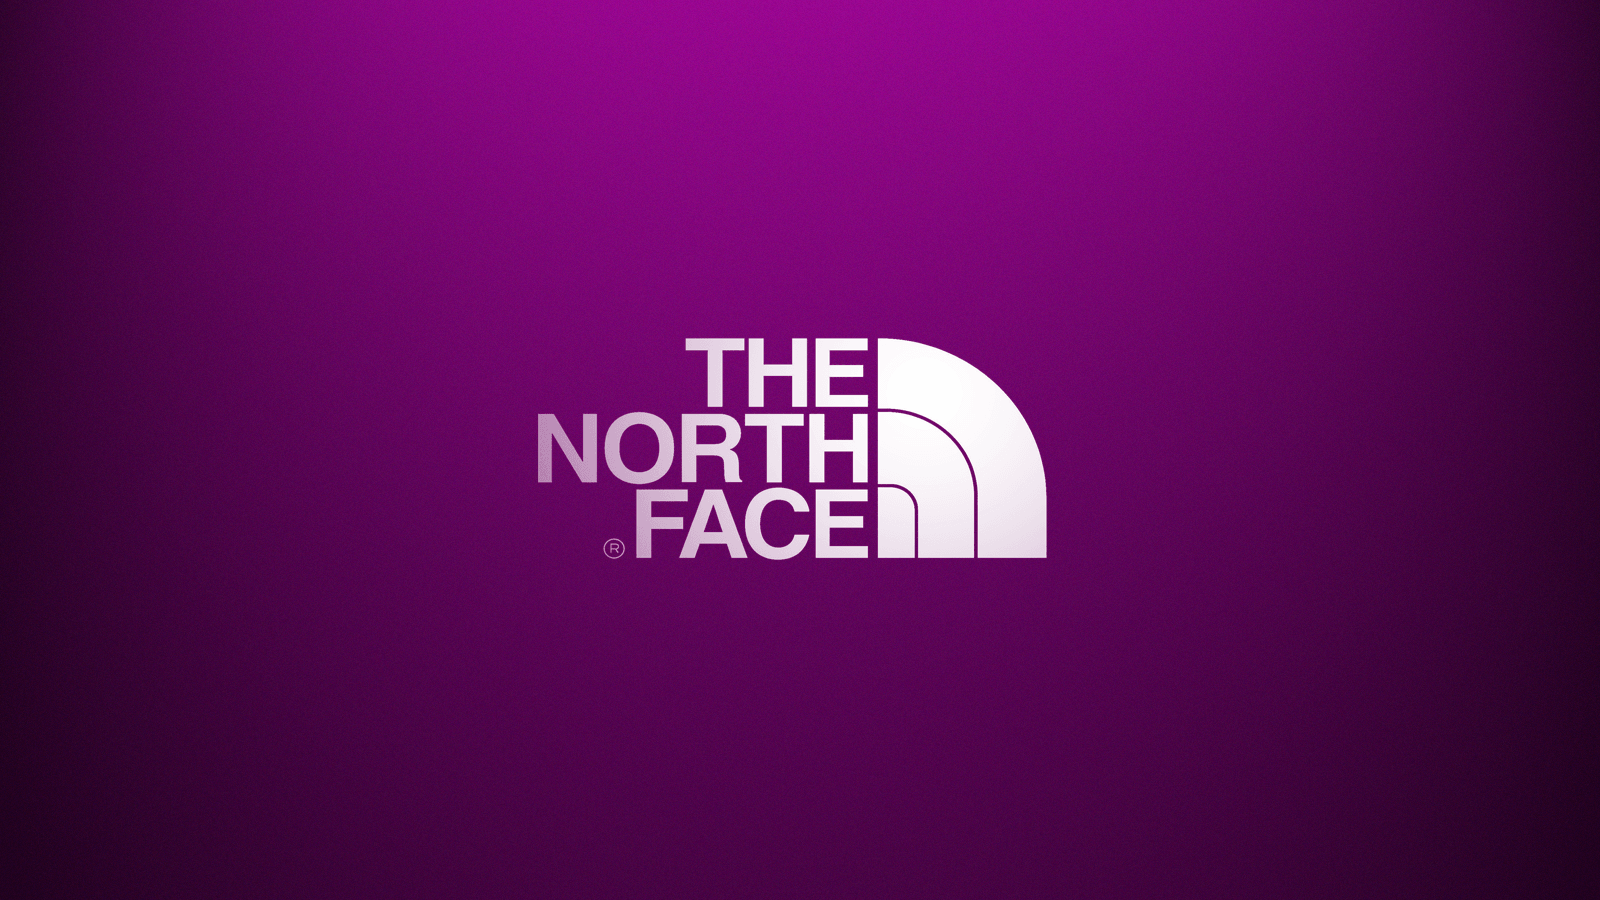 North face wallpapers wallpaper cave - The north face wallpaper for iphone ...